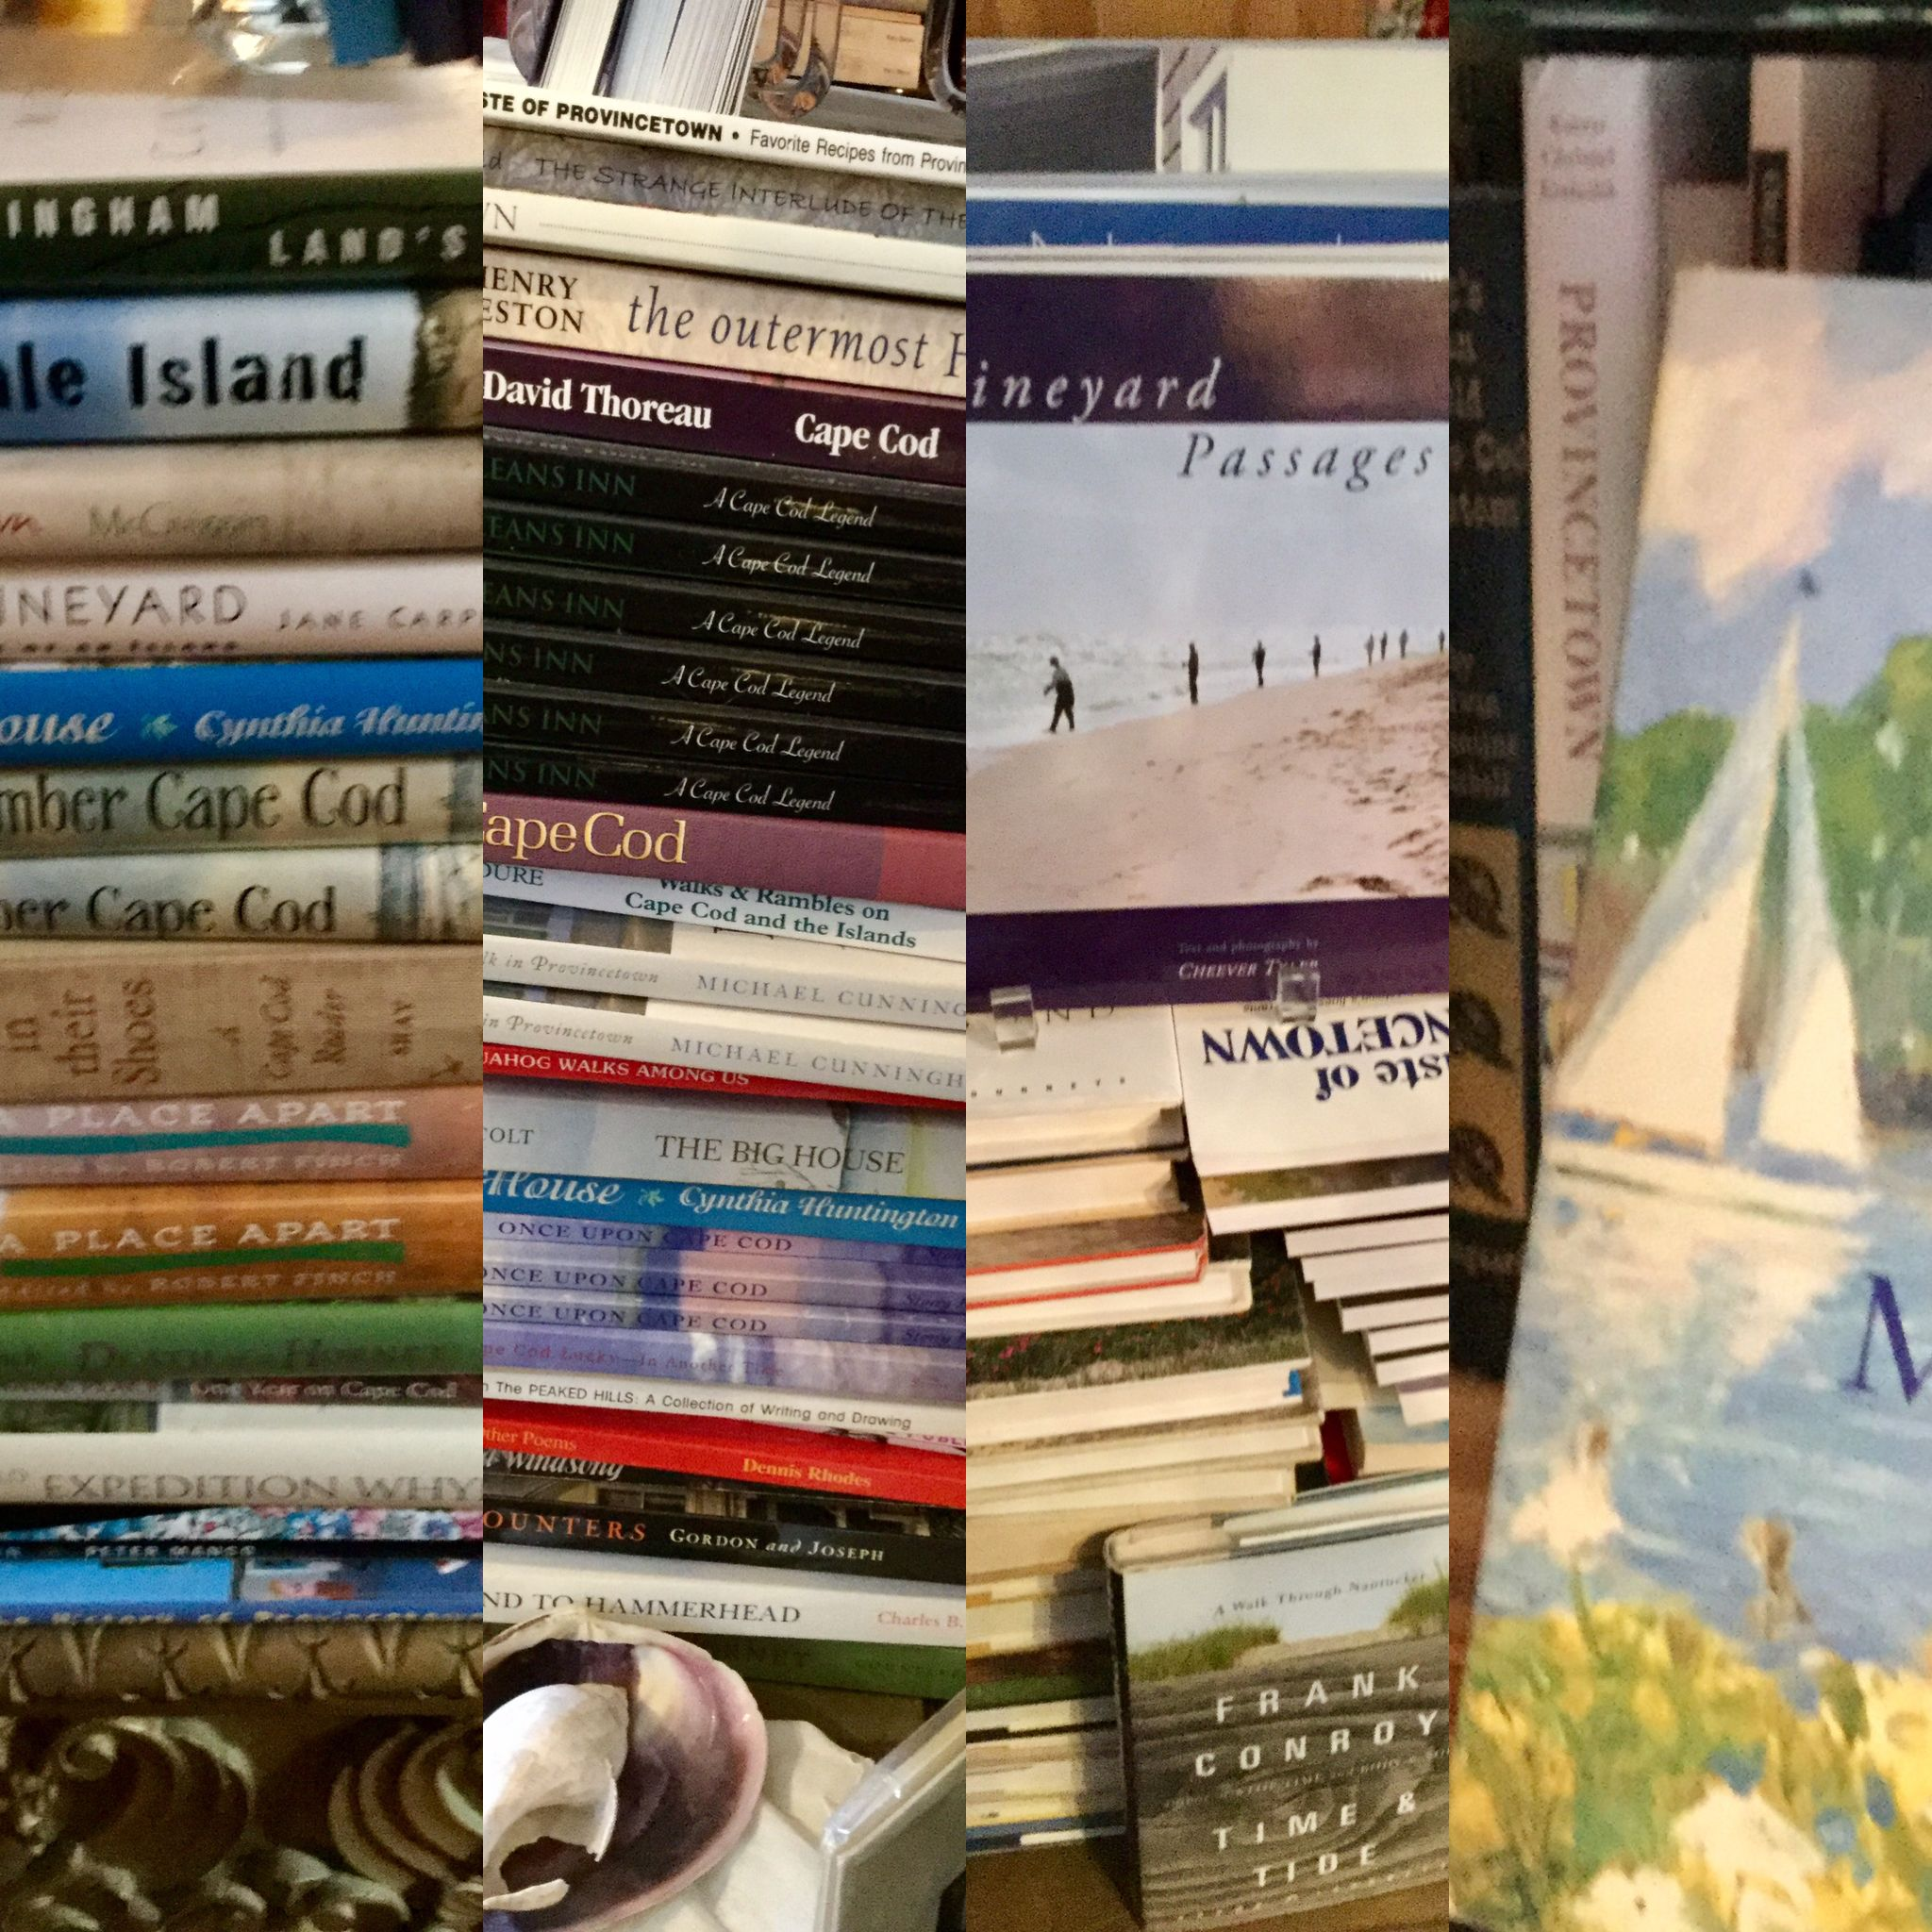 Visit Cape Cod from your armchair this winter, our bookshop has fuel for beach dreaming  Available online from our website or visit our shop in Connecticut.  #capecod #provincetown #truro ma. #beachreading